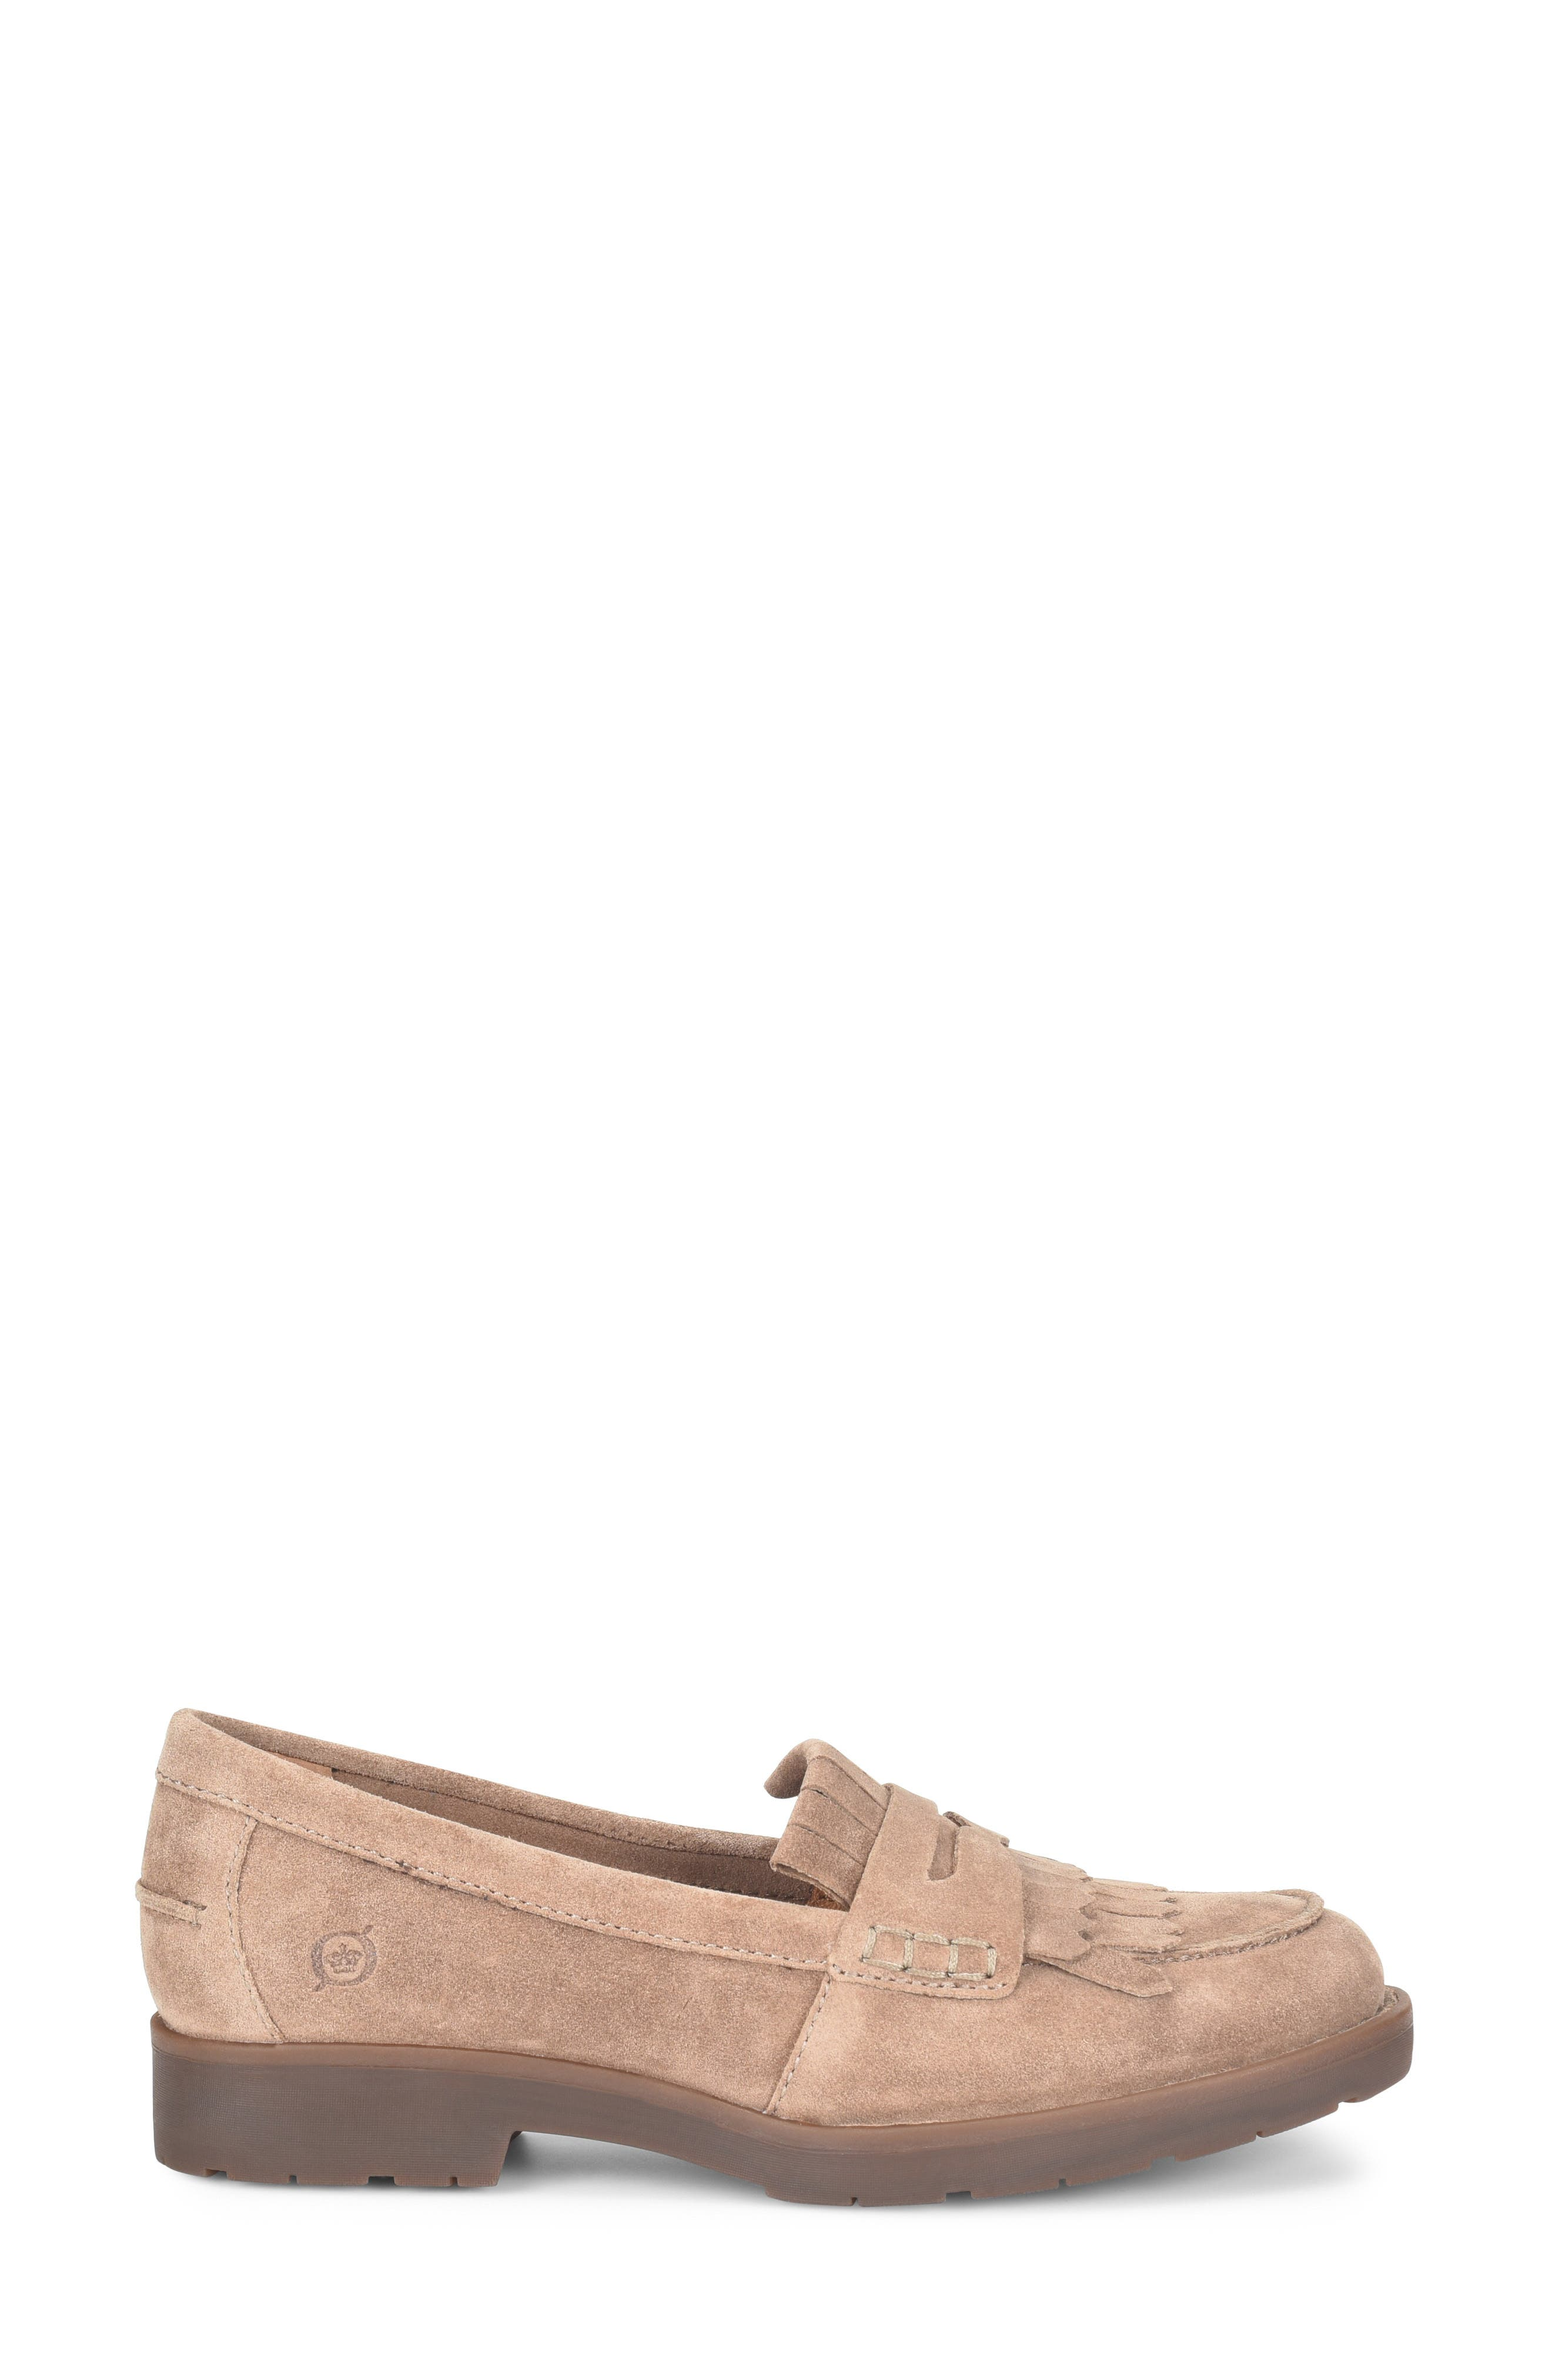 Lorens Loafer,                             Alternate thumbnail 3, color,                             TAUPE SUEDE